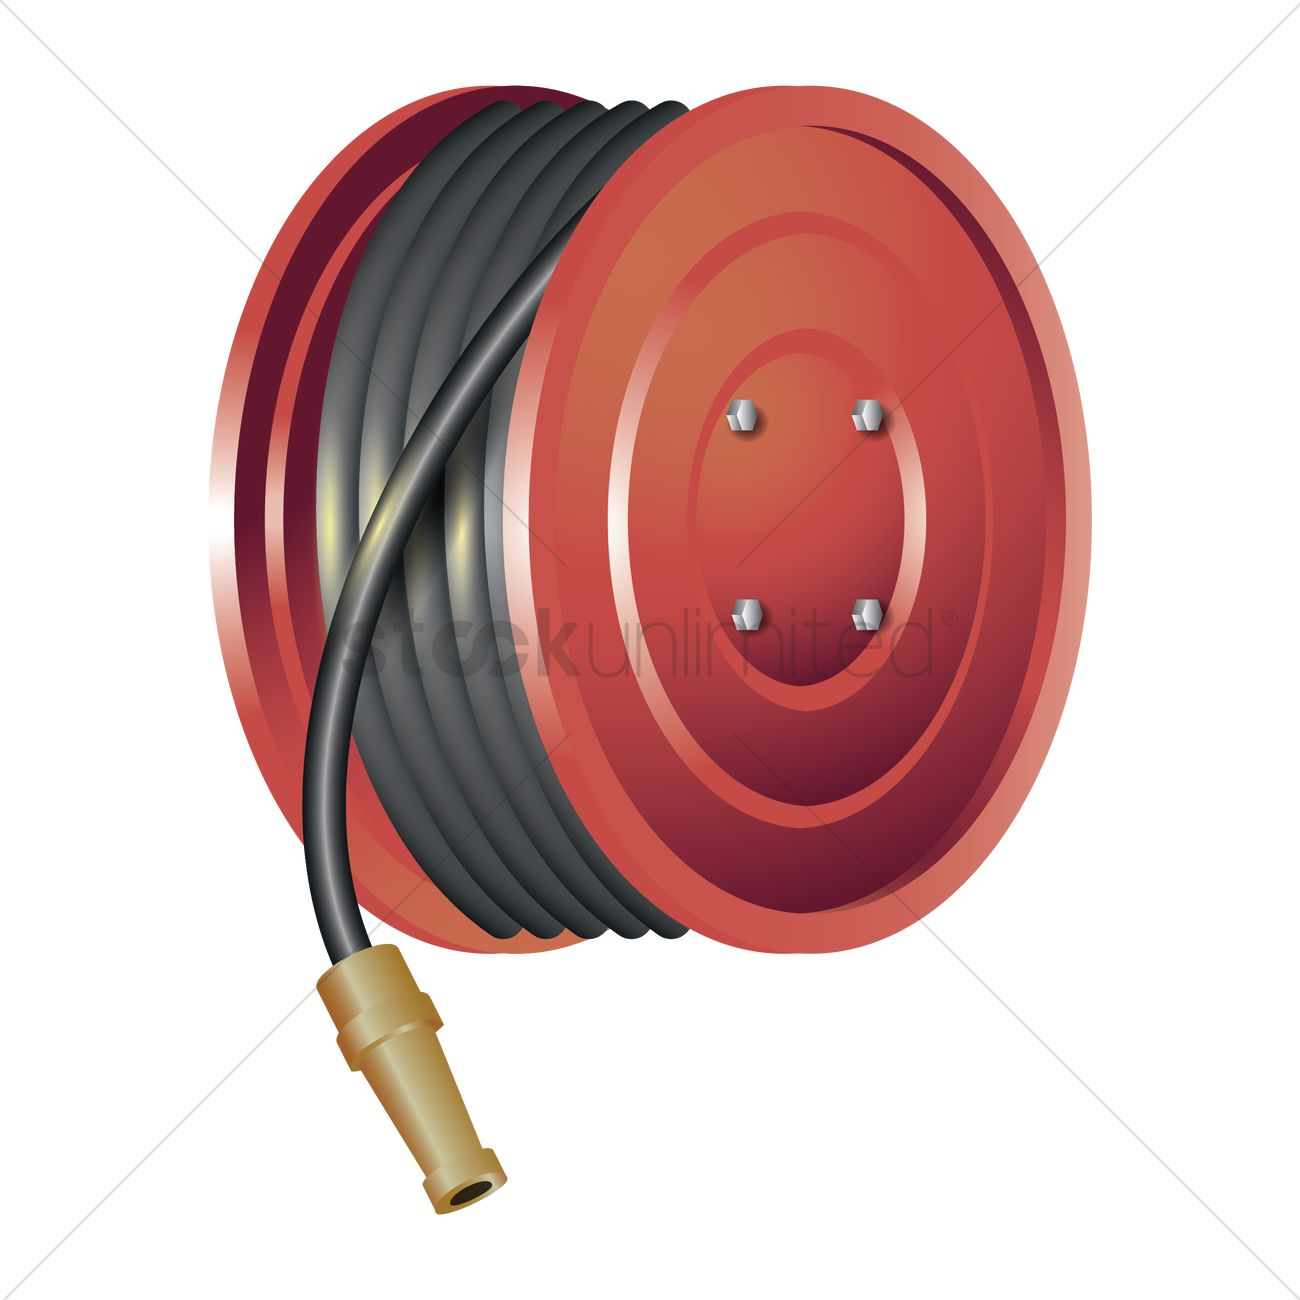 fire hose reel vector image 1806588 stockunlimited rh stockunlimited com fire house clipart fire hose clipart free